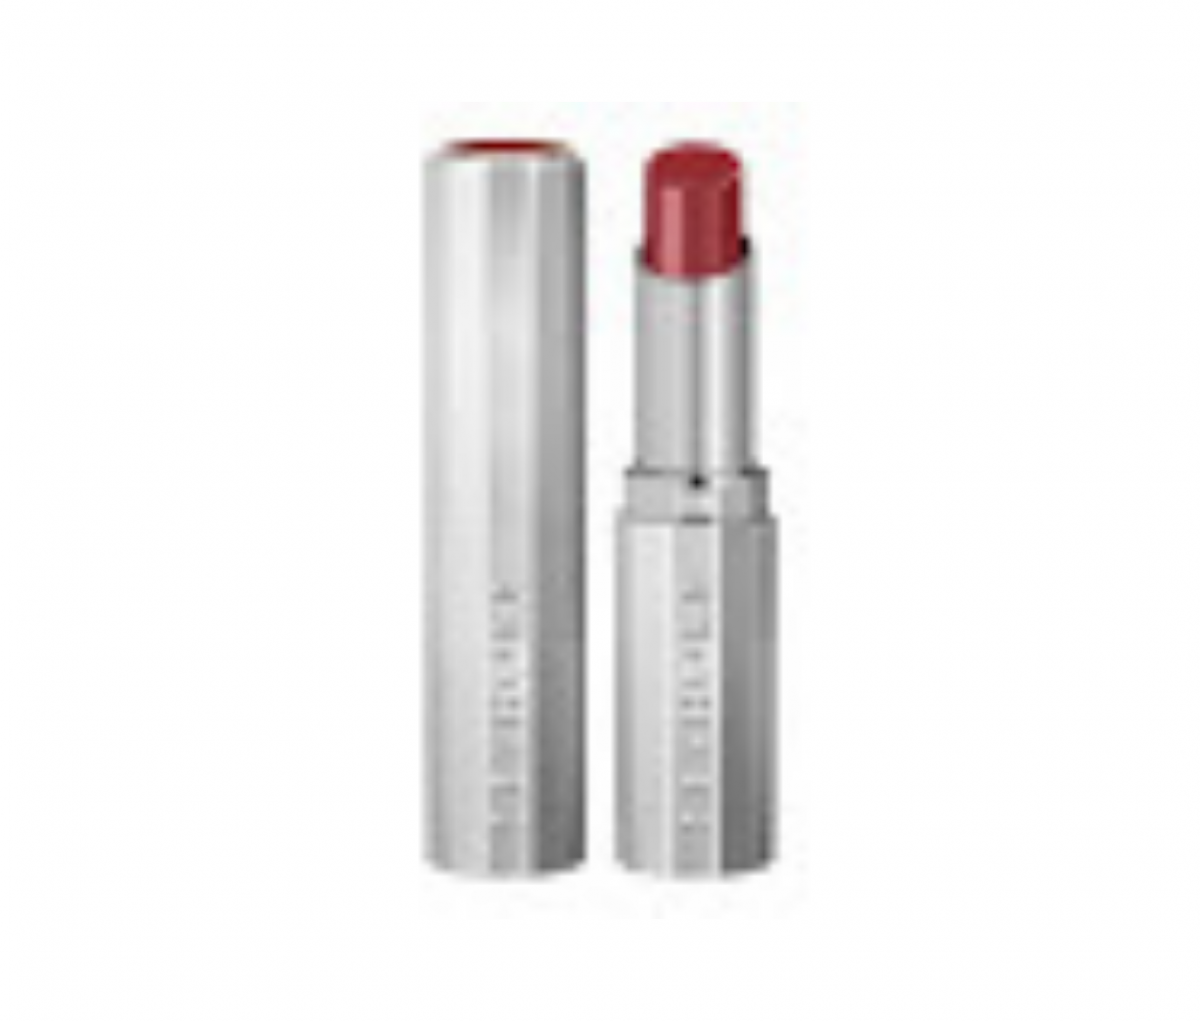 SEPHORA ROUGE LACQUER LIPSTICK L04 Empowered